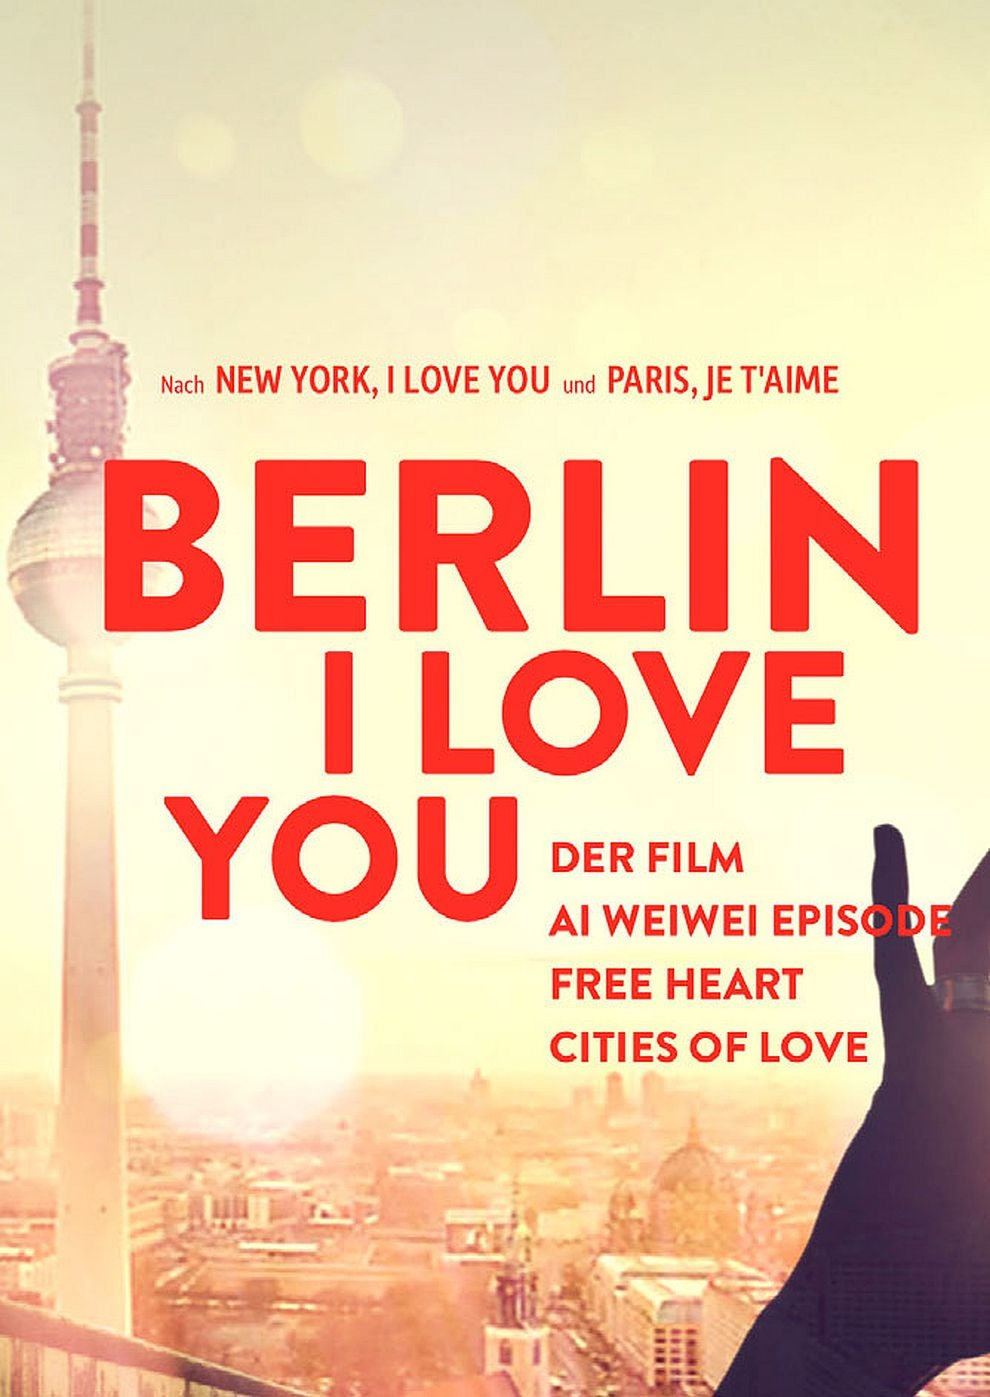 Berlin, I Love You (Poster)